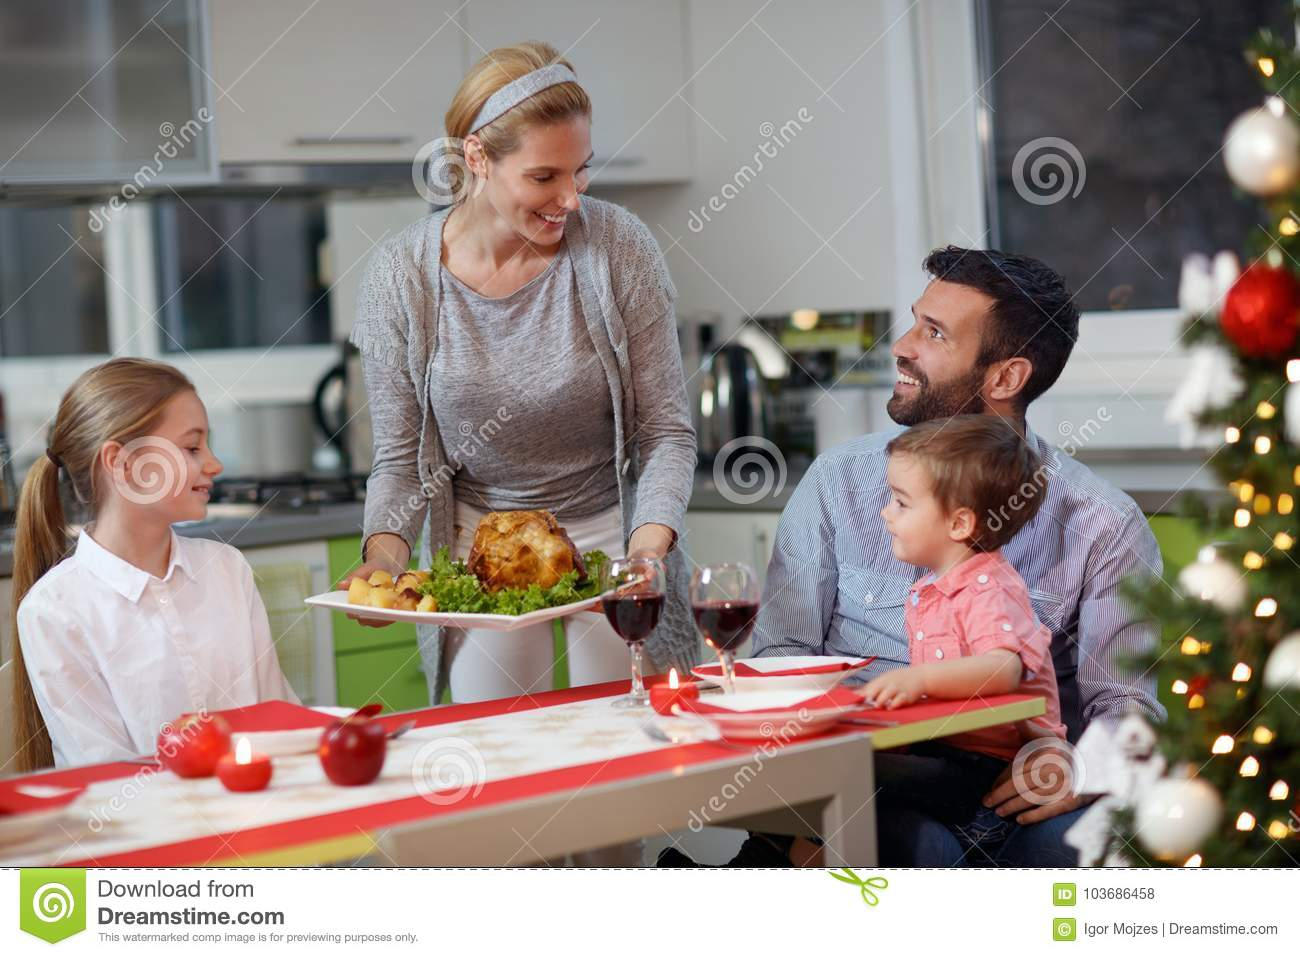 Christmas dinner, happy family at the table